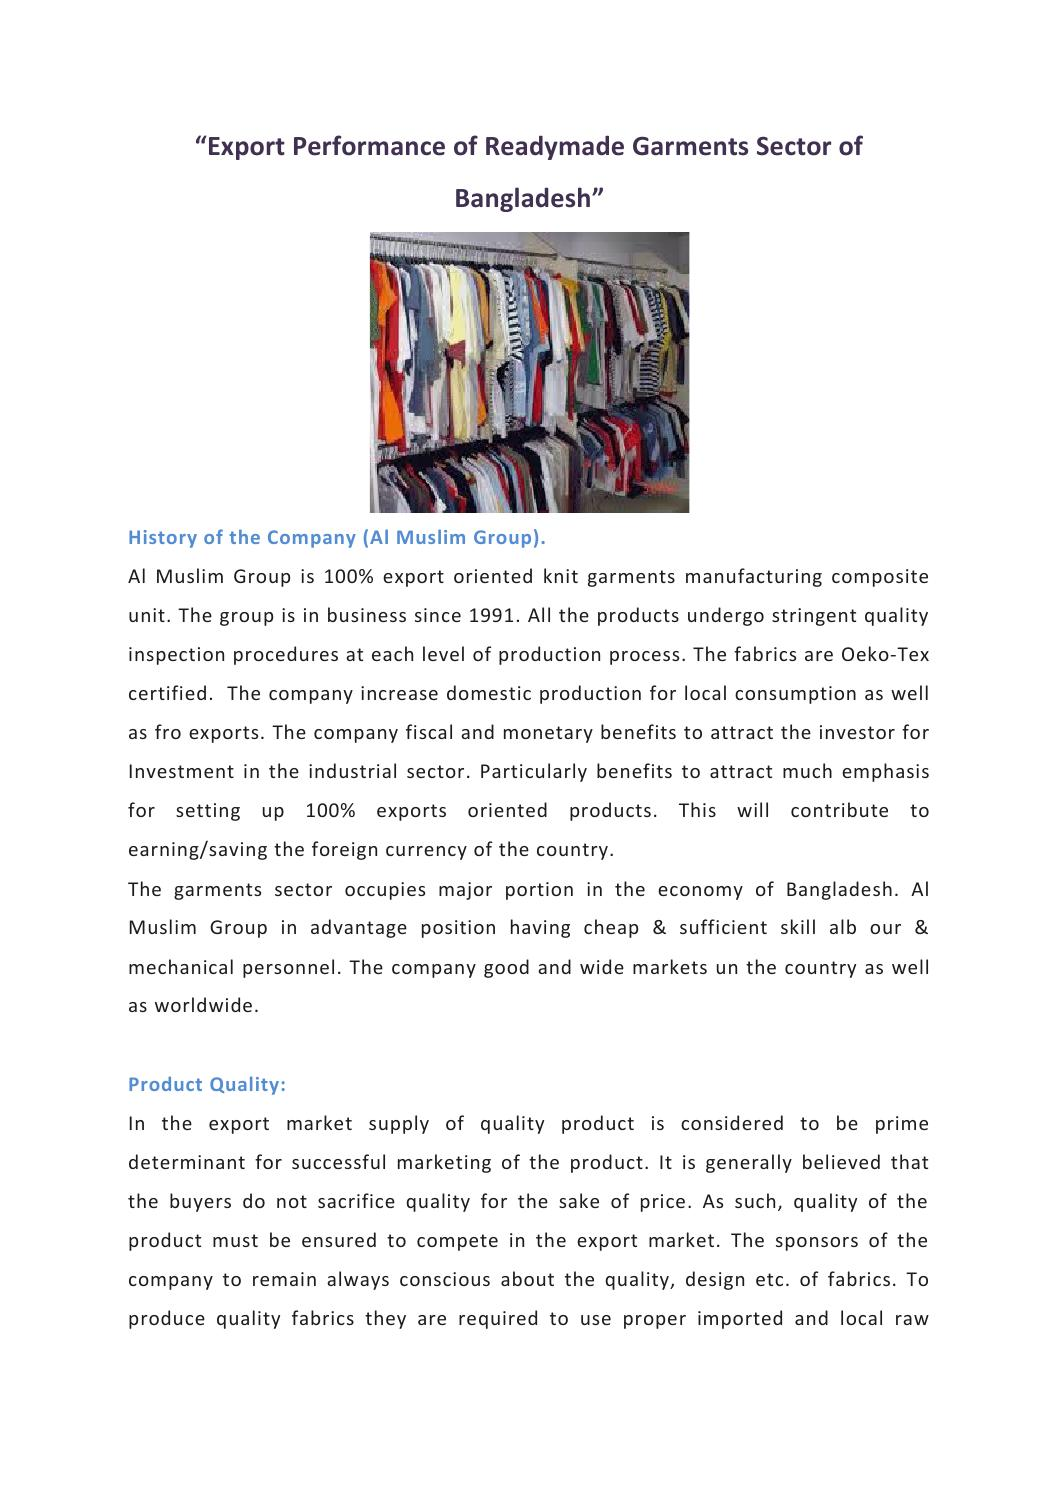 Export performance of readymade garments sector of